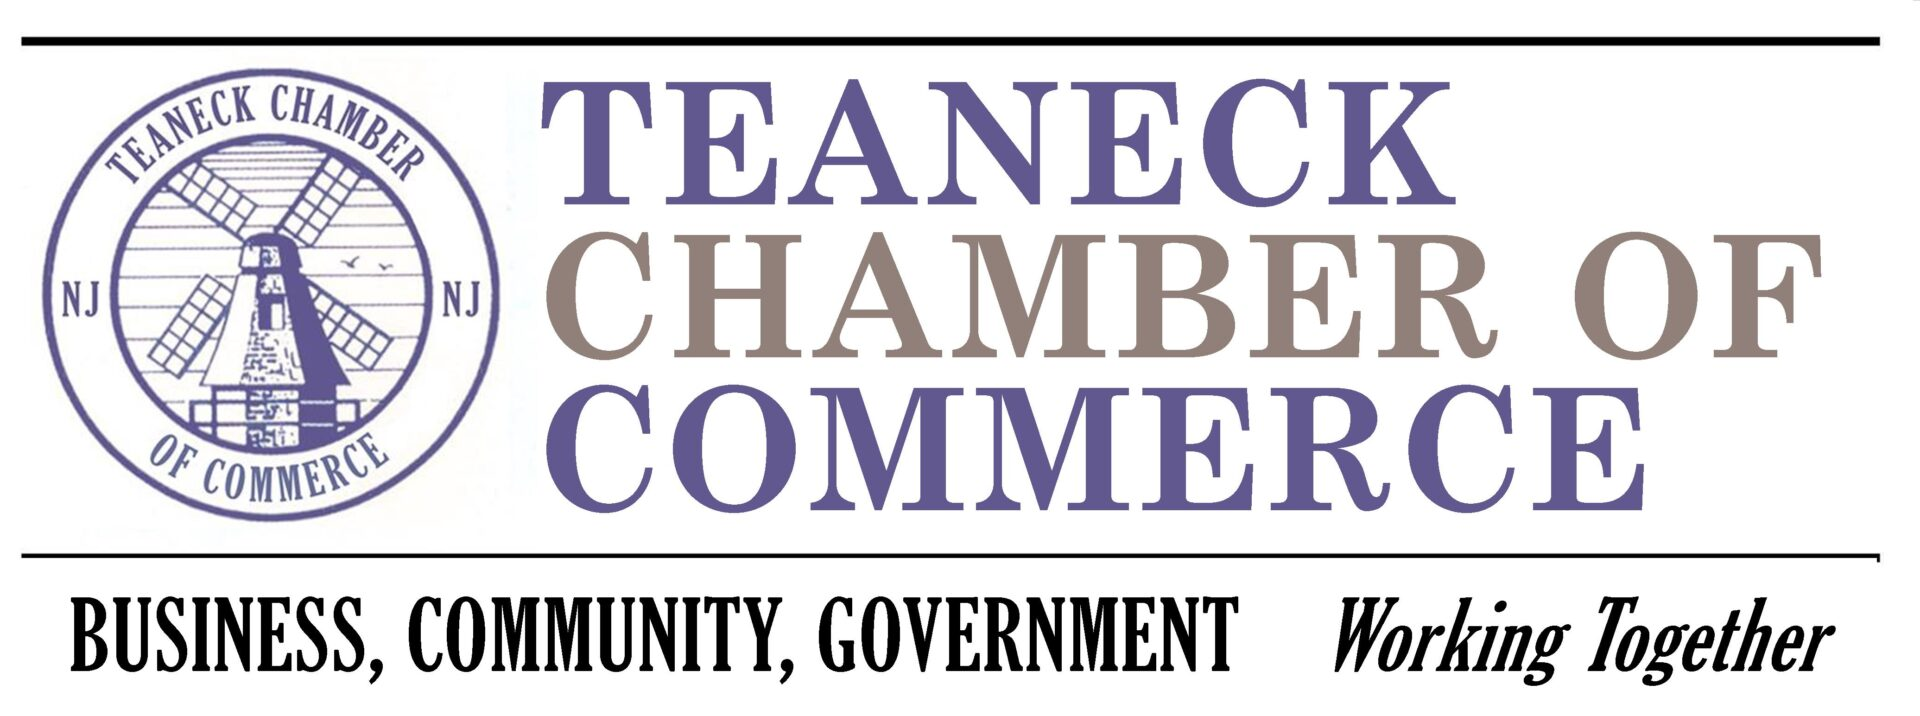 Teaneck Chamber of Commerce in New Jersey